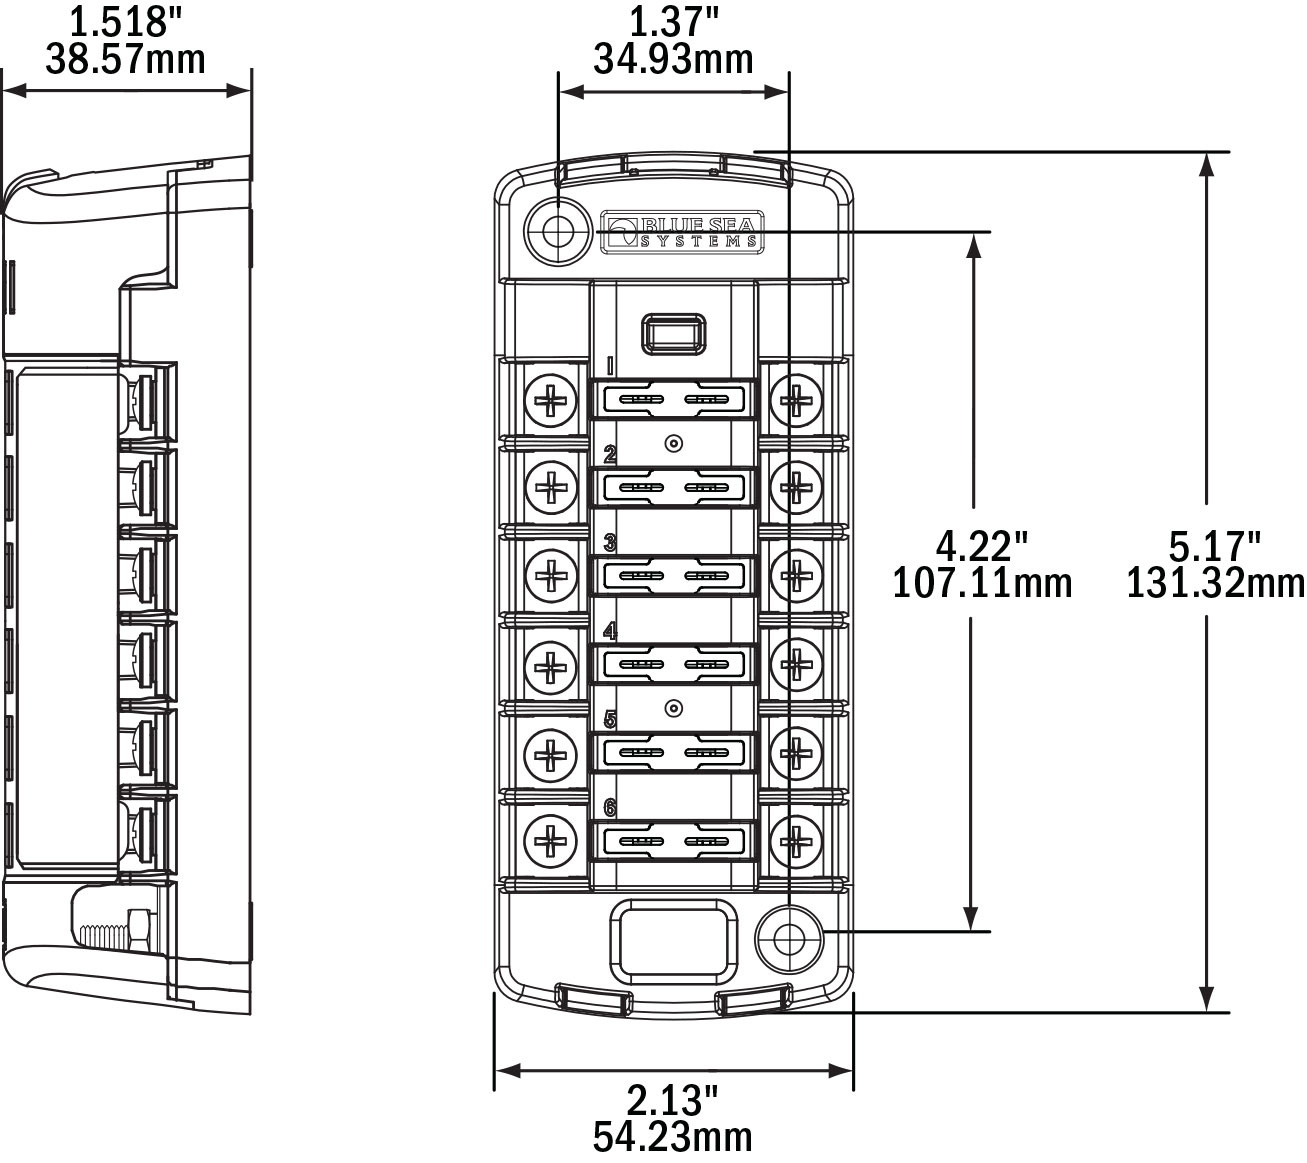 hight resolution of fuse box dimensions wiring library 3 phase motor fuse sizing fuse box dimensions